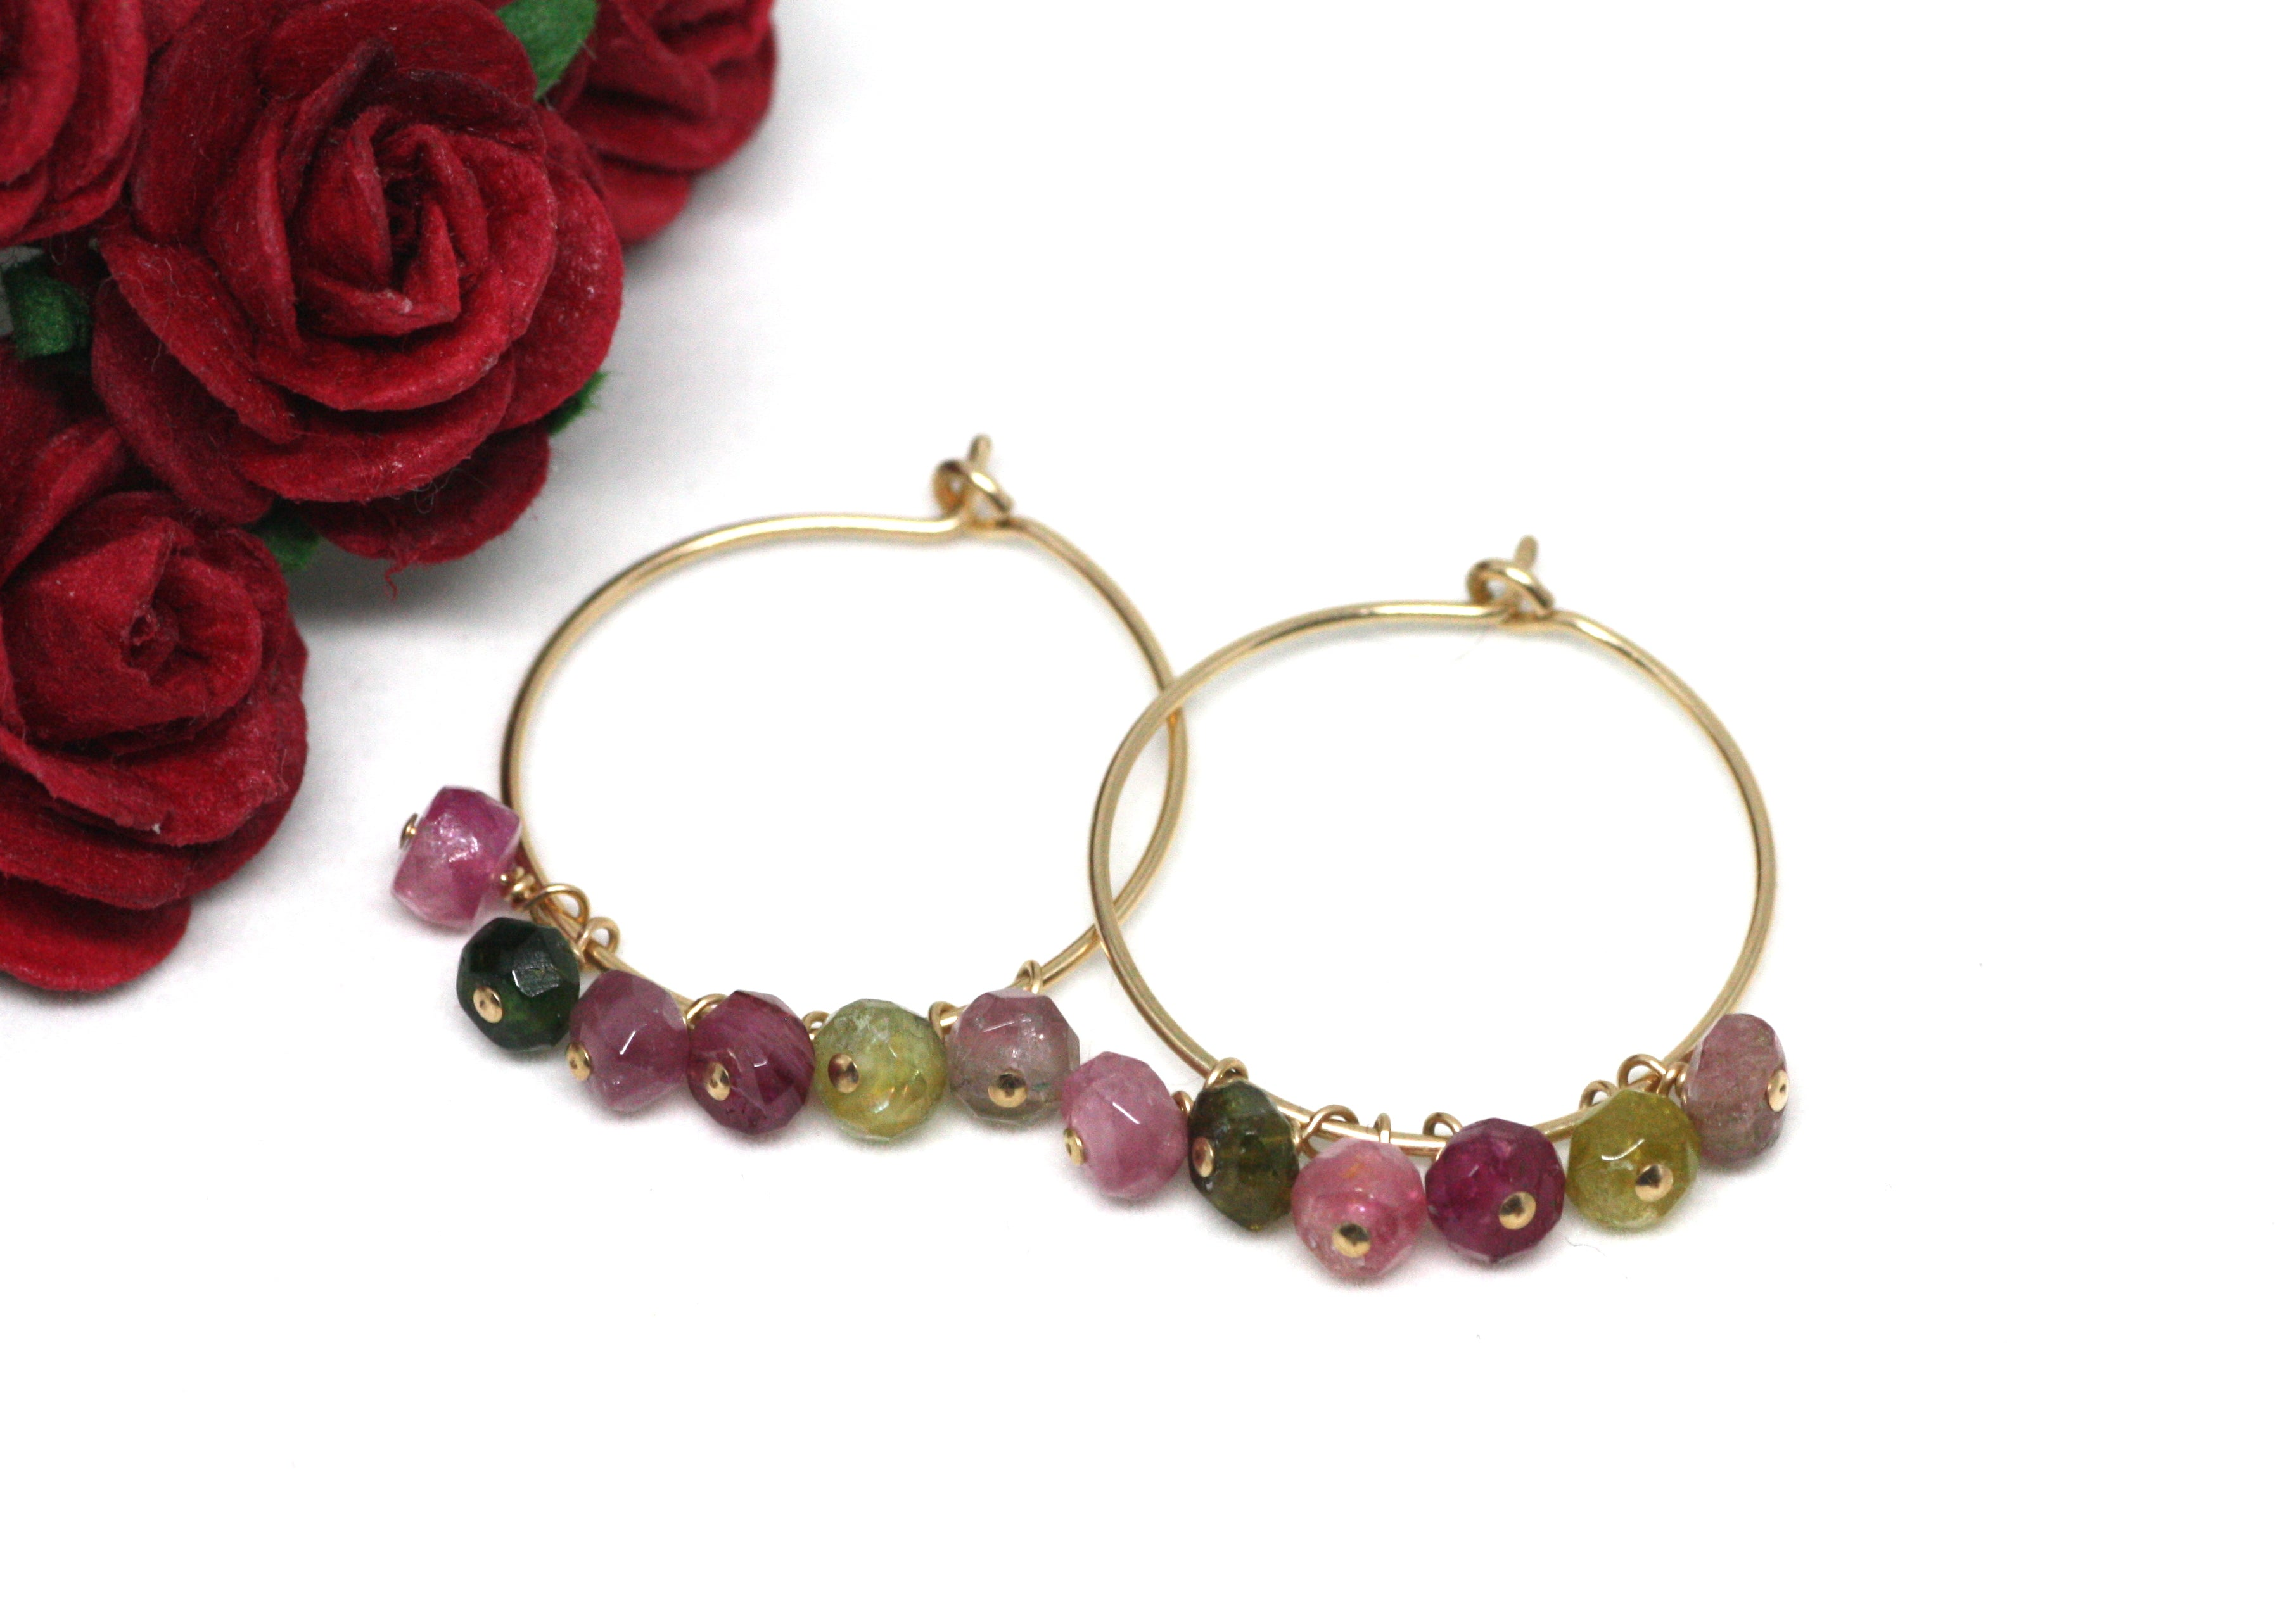 Watermelon Tourmaline Hoop Earrings in Gold